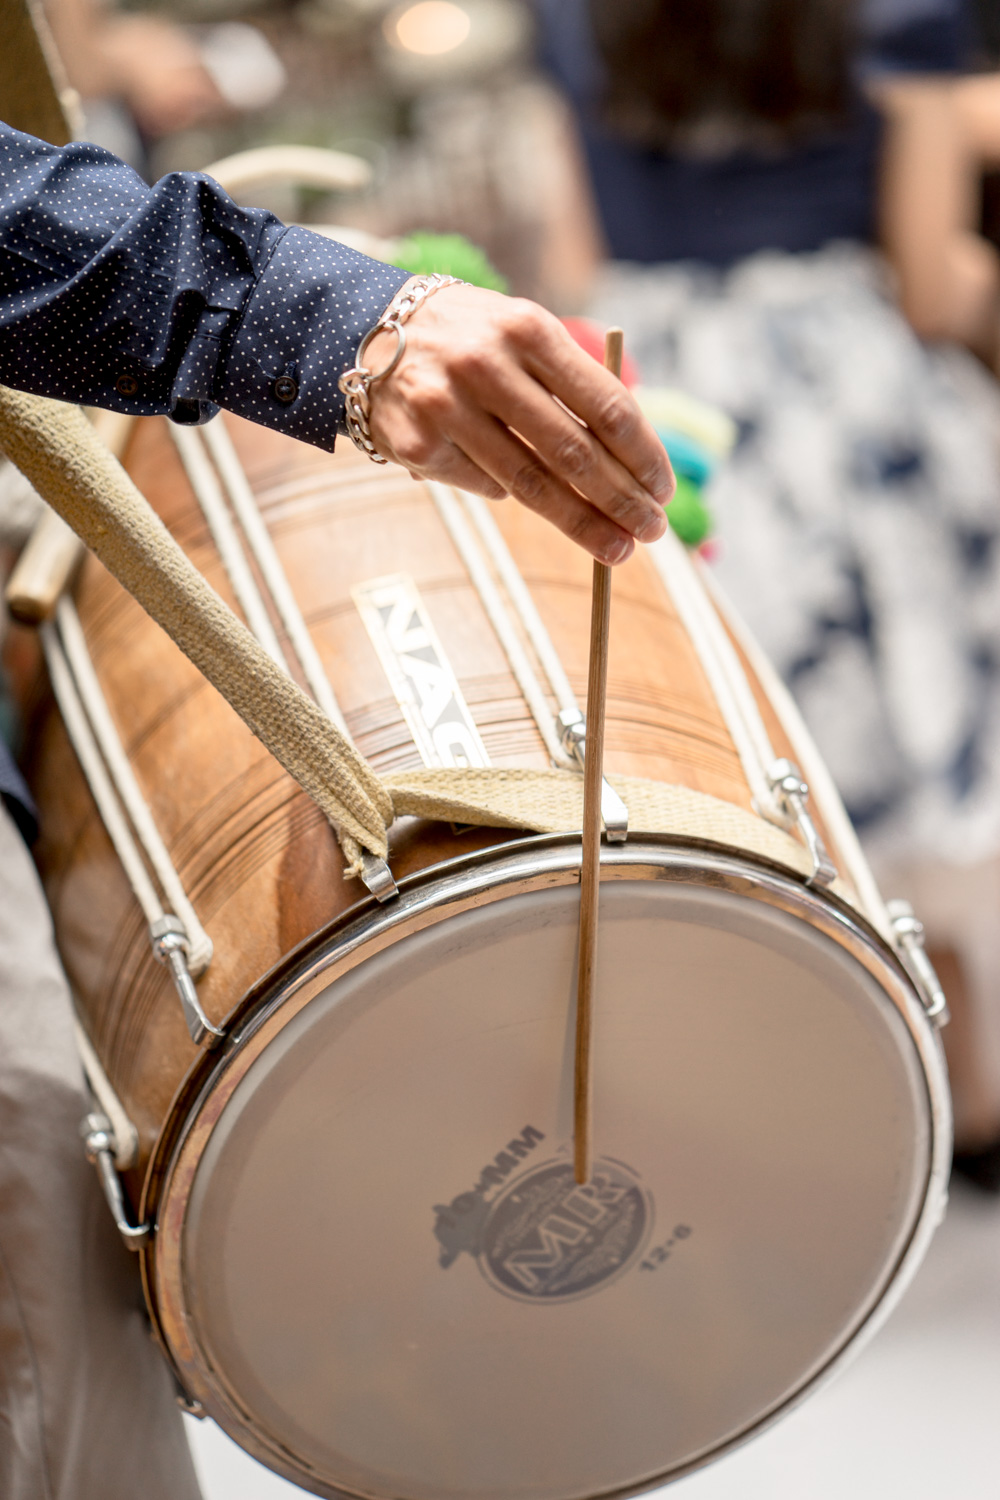 Dholl drummers just like you would have seen in any Punjabi - Hindu weddings.